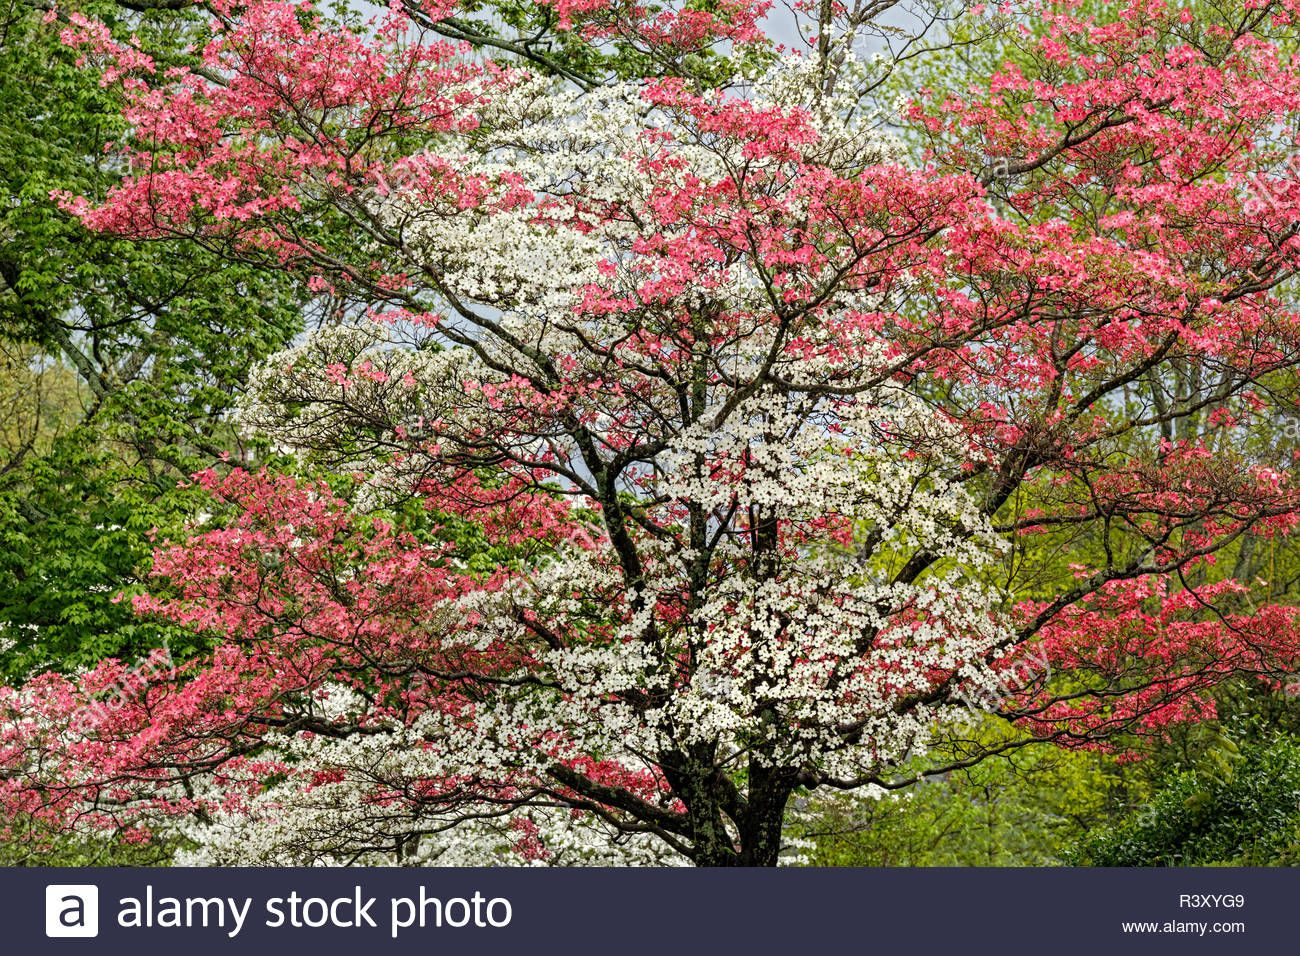 Single Dogwood Tree With Pink And White Blossoms Kentucky Stock Photo Dogwood Trees Dogwood Blossom